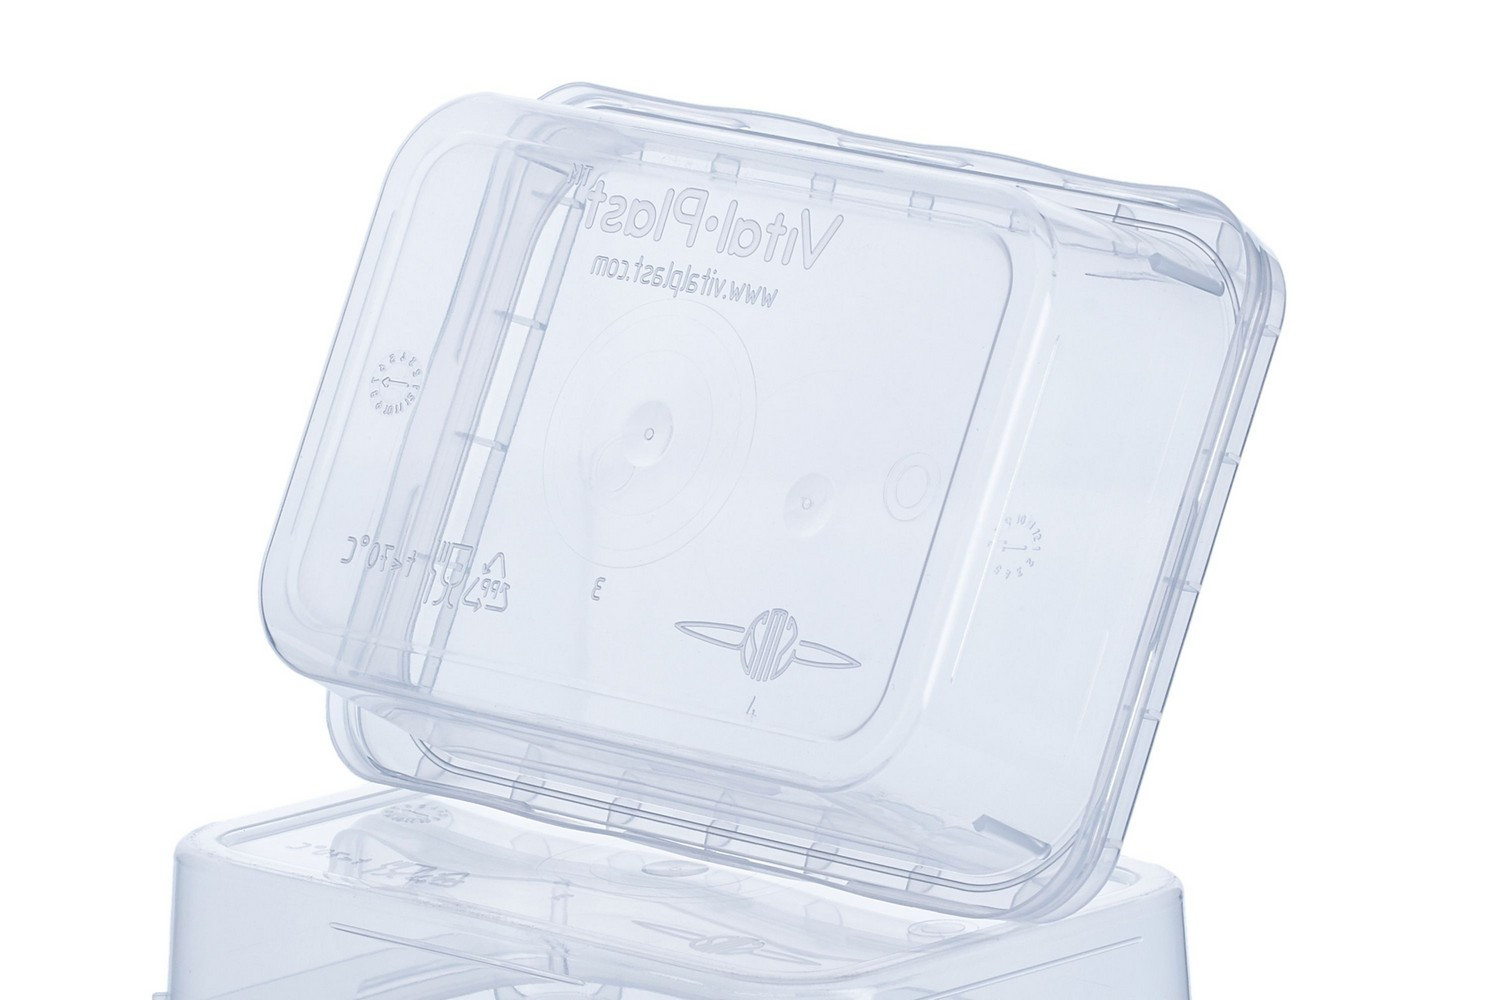 Rectangular sealable clear coloured containers 180 ml for different purposes Europe